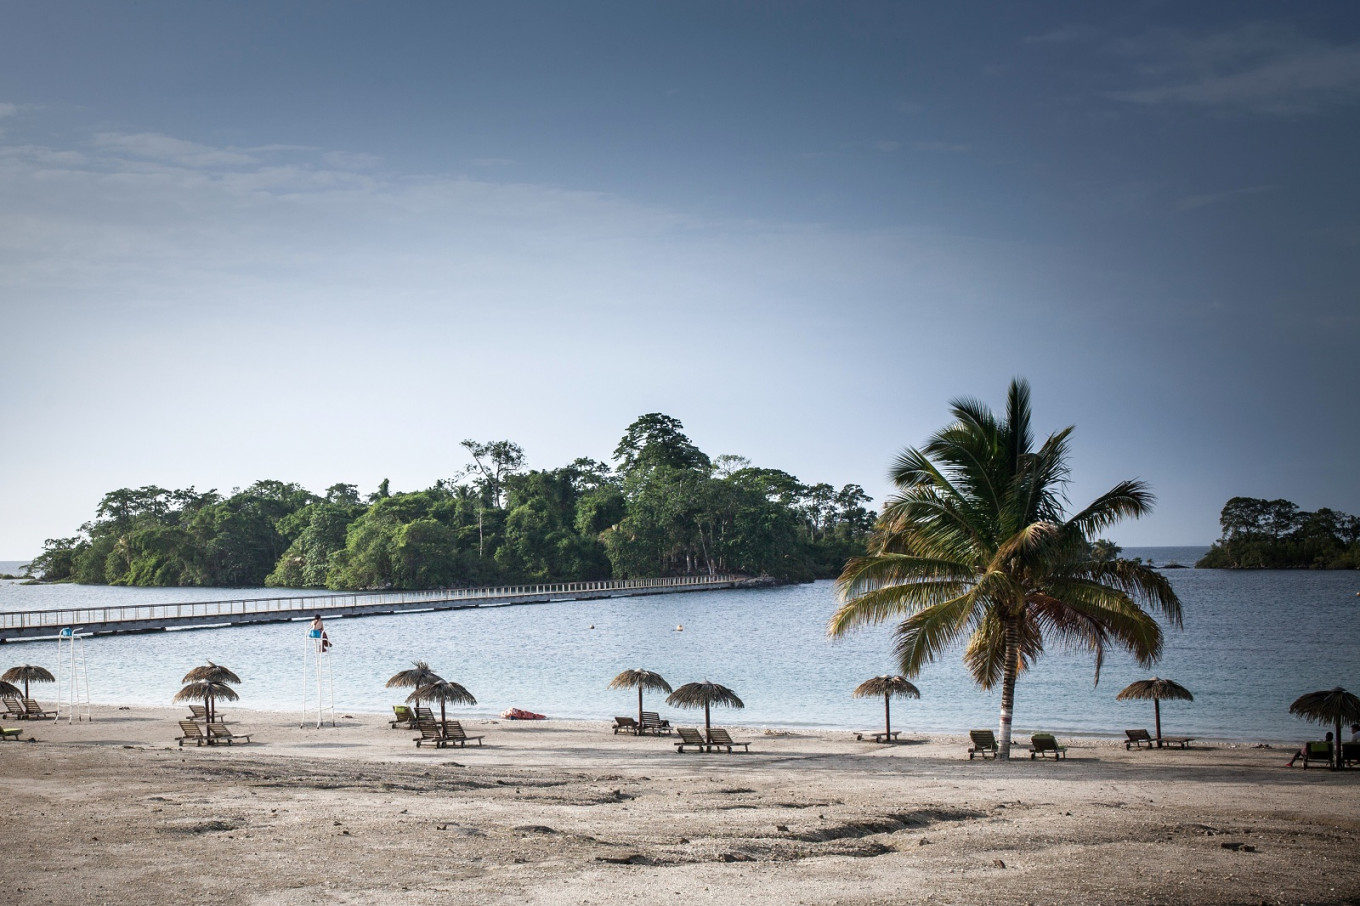 Equatorial Guinea struggles for place in world tourism